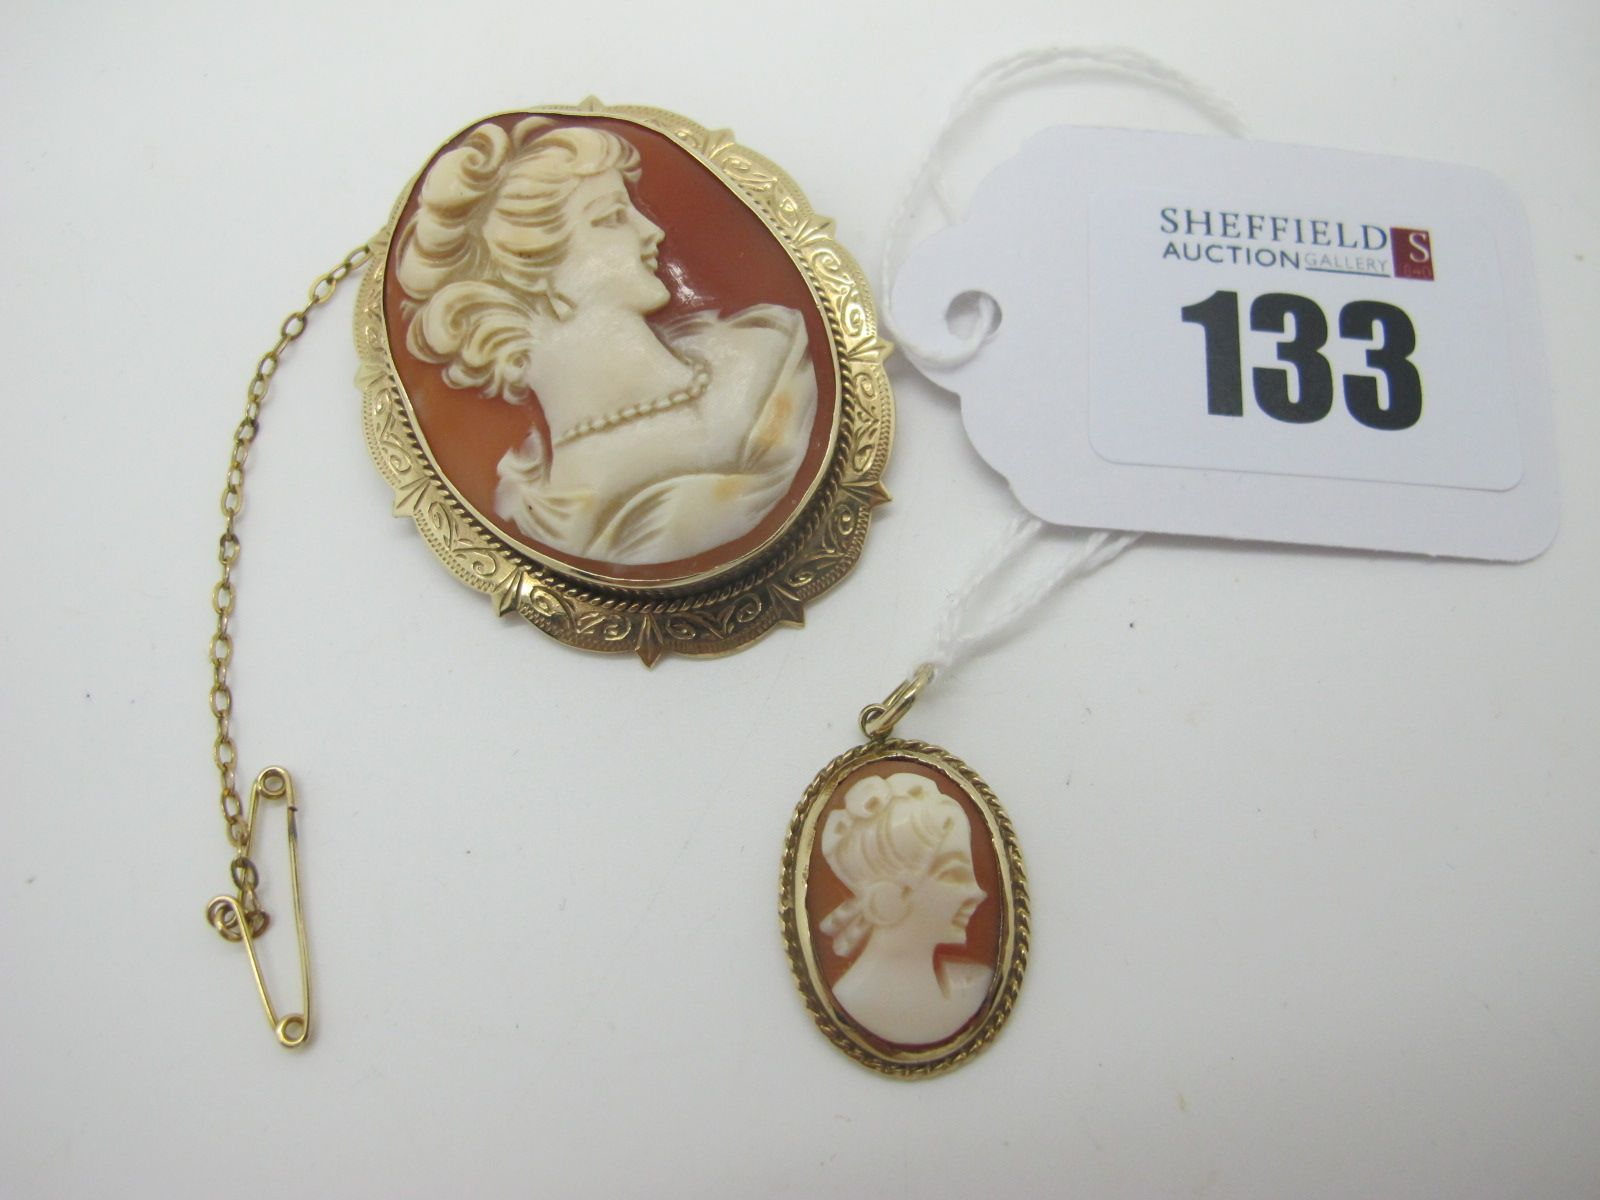 A 9ct Gold Oval Shell Carved Cameo Brooch, depicting female profile, within shaped and engraved